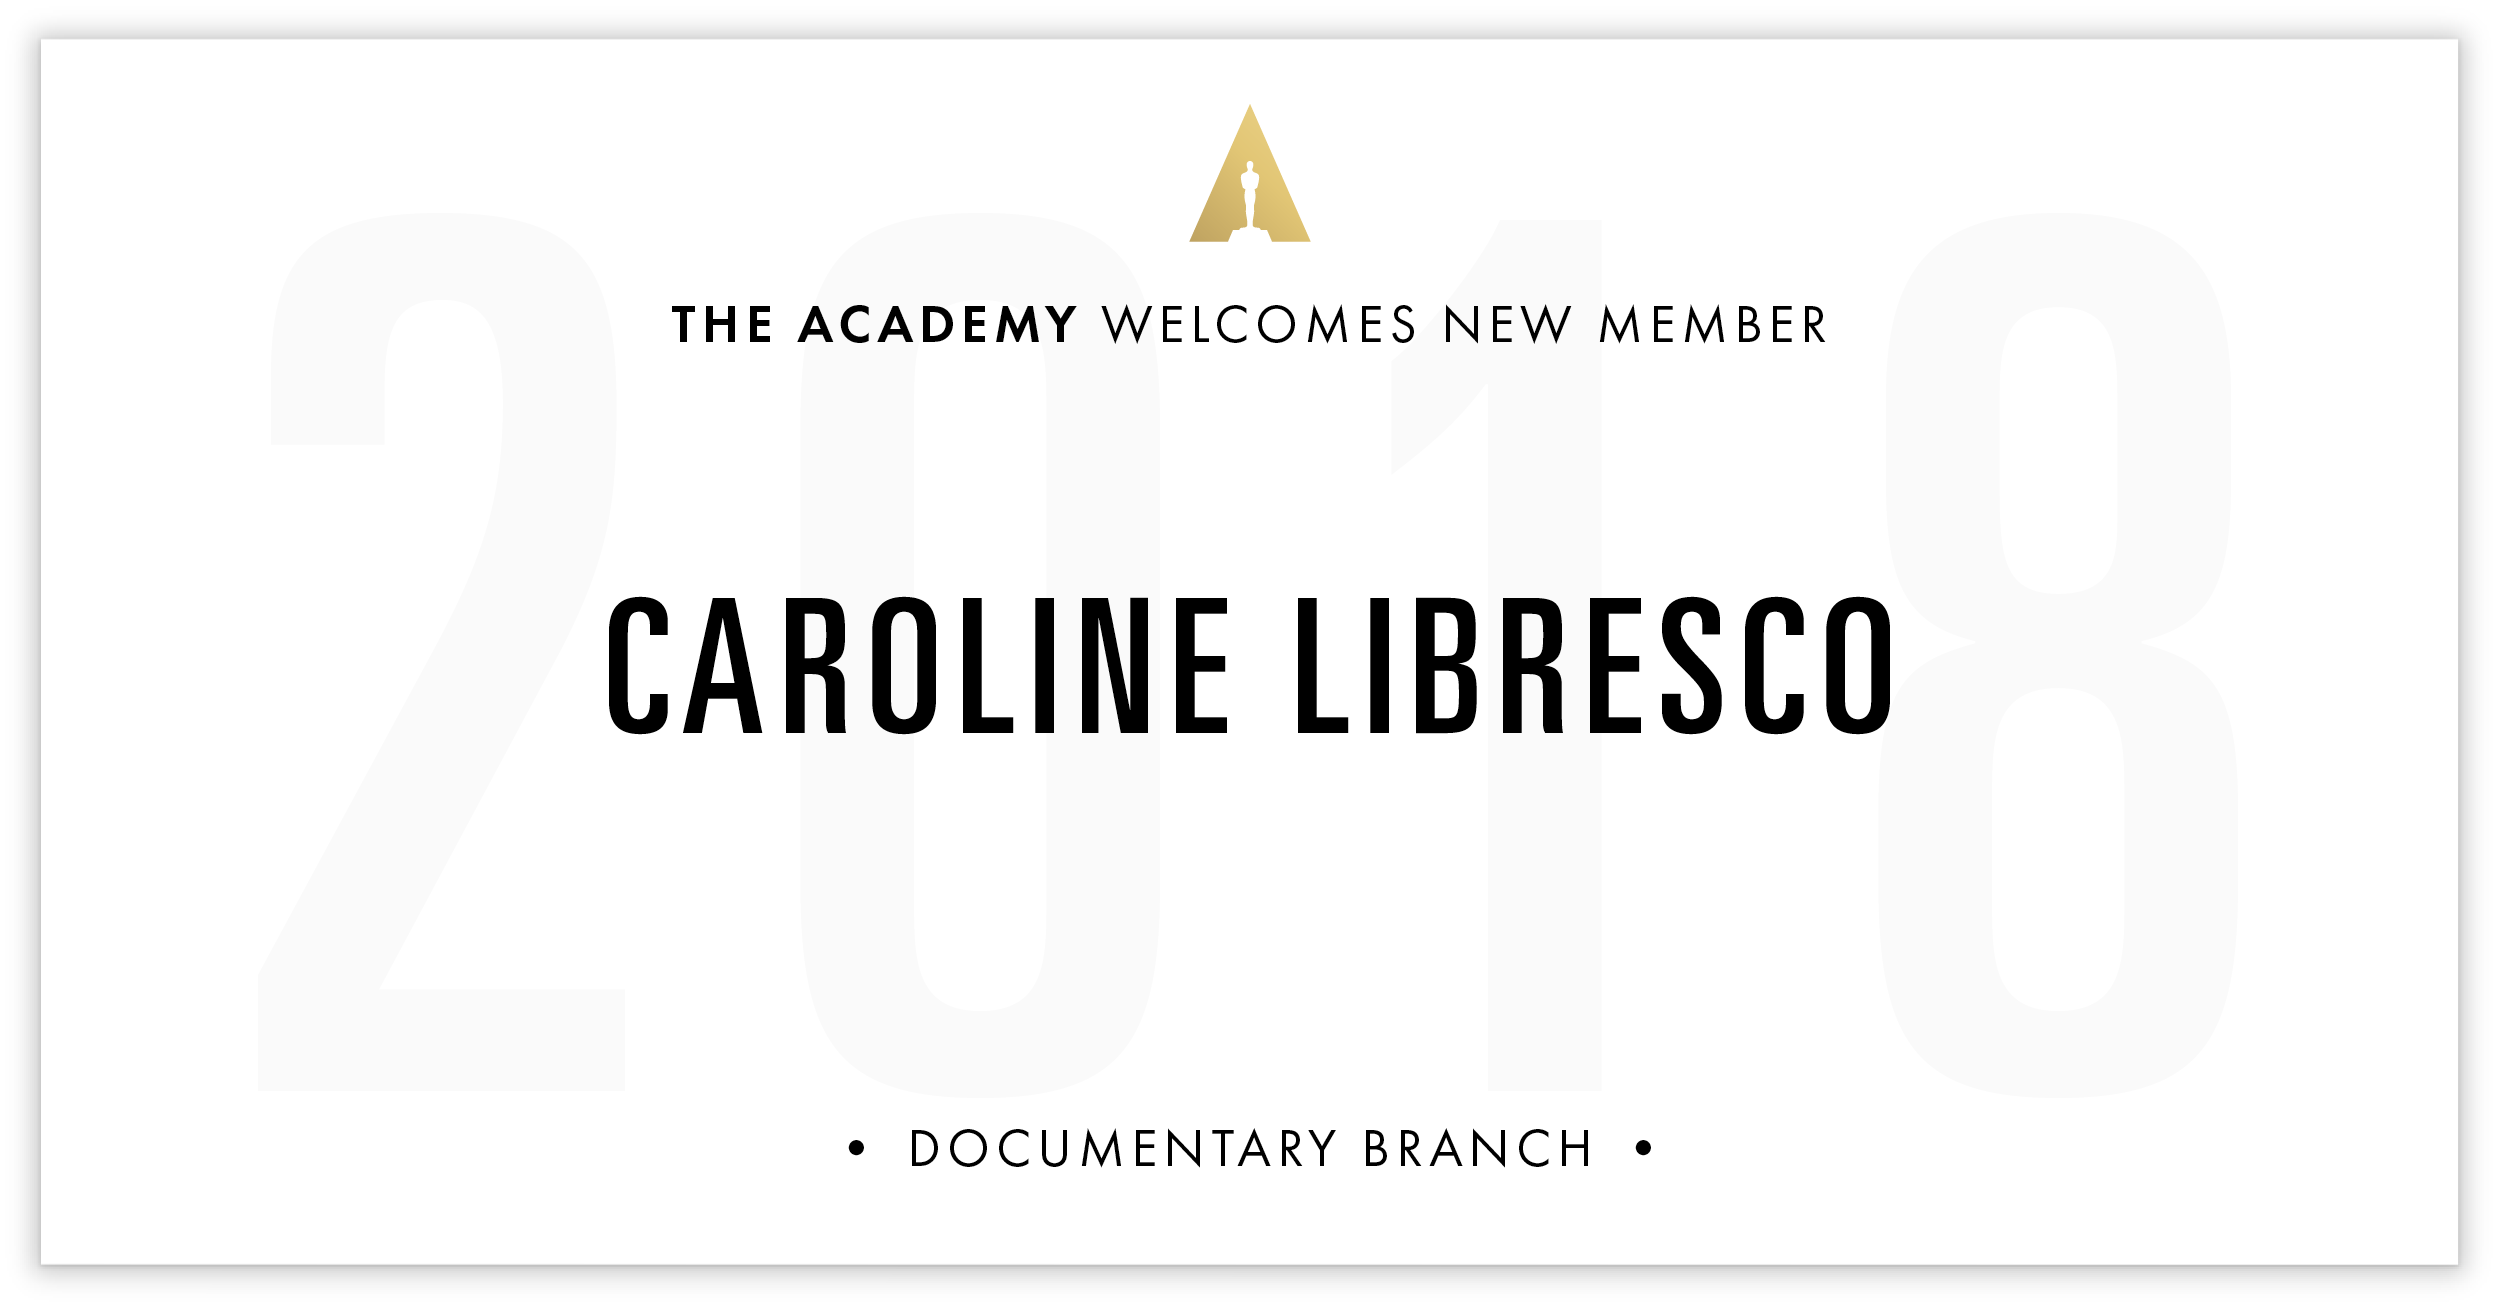 Caroline Libresco is invited!